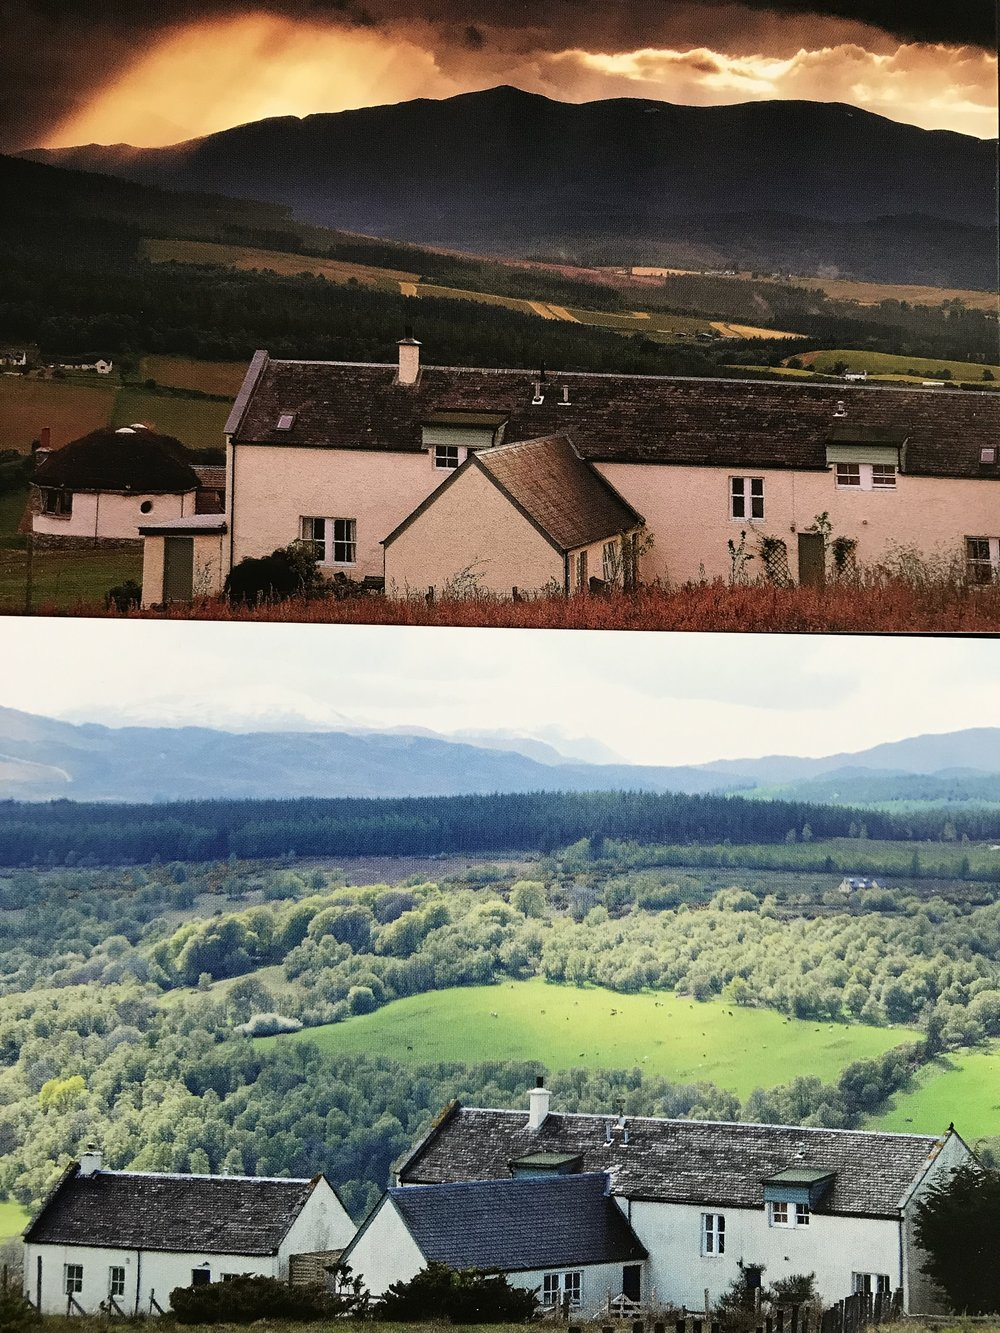 I'm delighted to announce I have been awarded Spring Residency at Monick Mhor, Scotland's creative writing centre. Set 1,000 feet above sea level, with inspiring views of Ben Wyvis, I'll be working on my next project, as well as connecting with other writers. I'm pretty sure I'll also find the time to explore the countryside and toast myself by the fire. I'm so lucky to have been given this chance to work on my next book here. Thank you all at Monick Mhor for this opportunity and can't wait to see you soon.